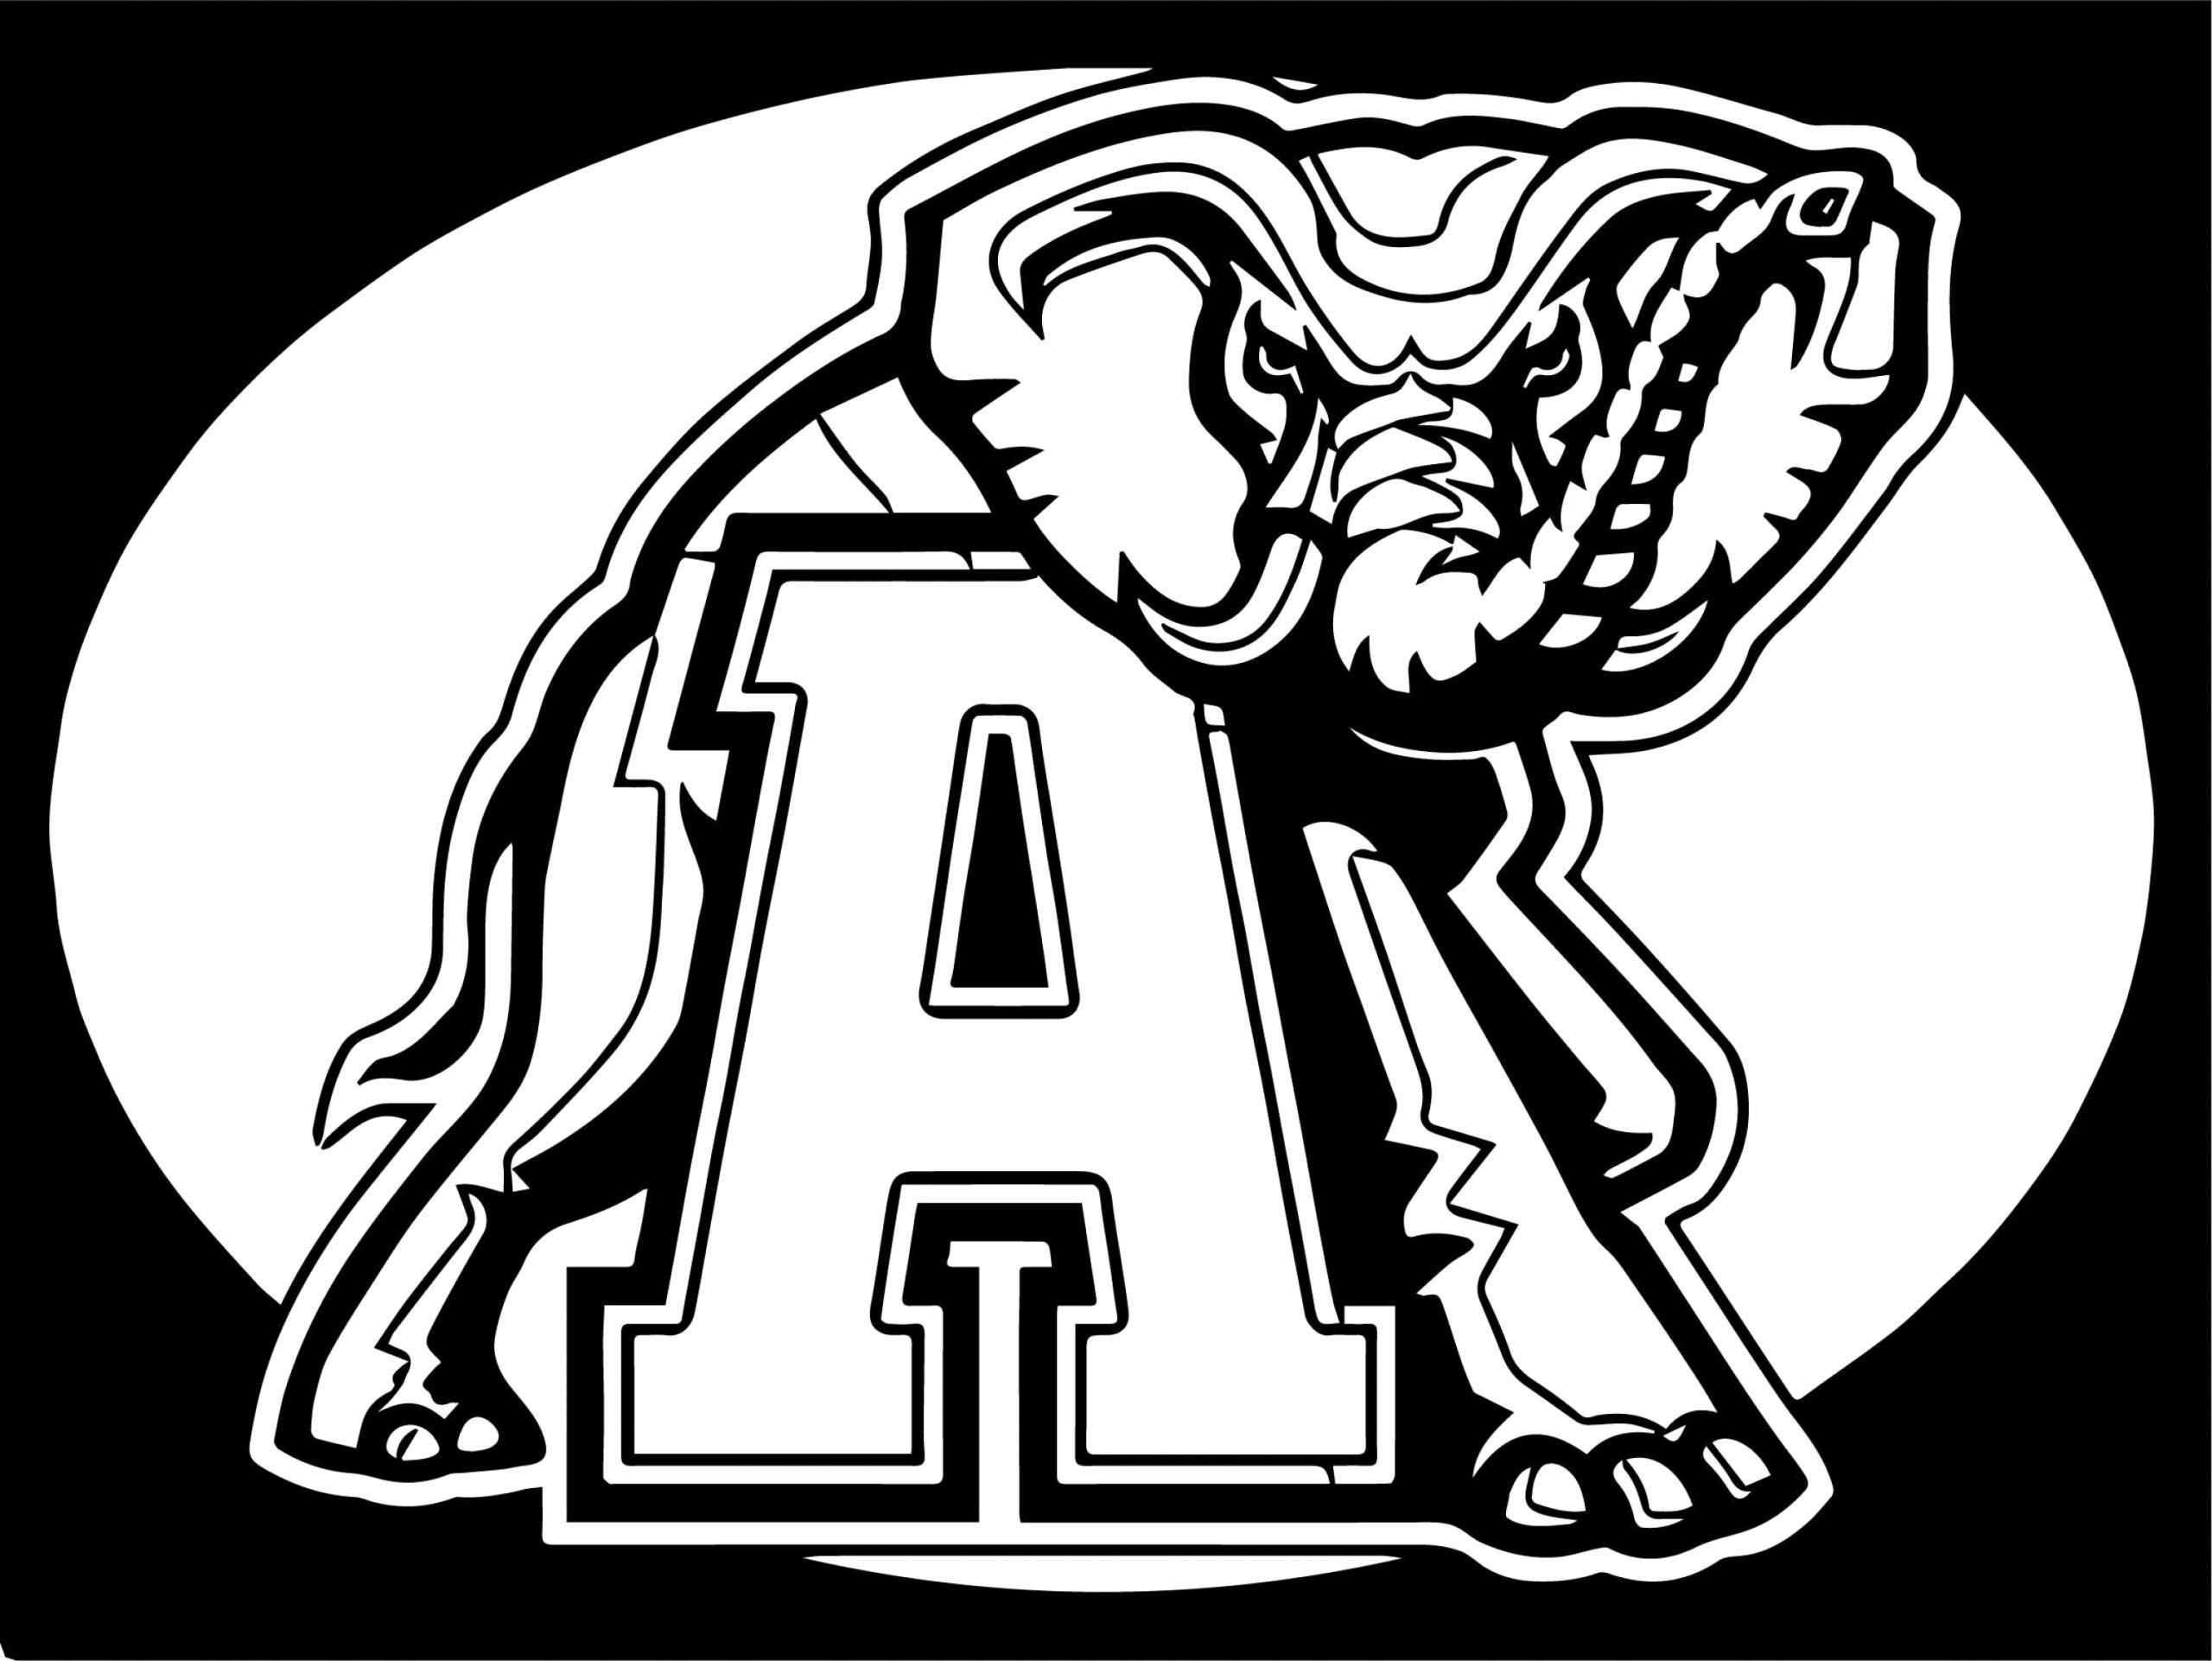 Alabama Crimson Tide Football Coloring Pages Awesome Coloring Page For Kids Free Pr Alabama Crimson Tide Football Football Coloring Pages Crimson Tide Football